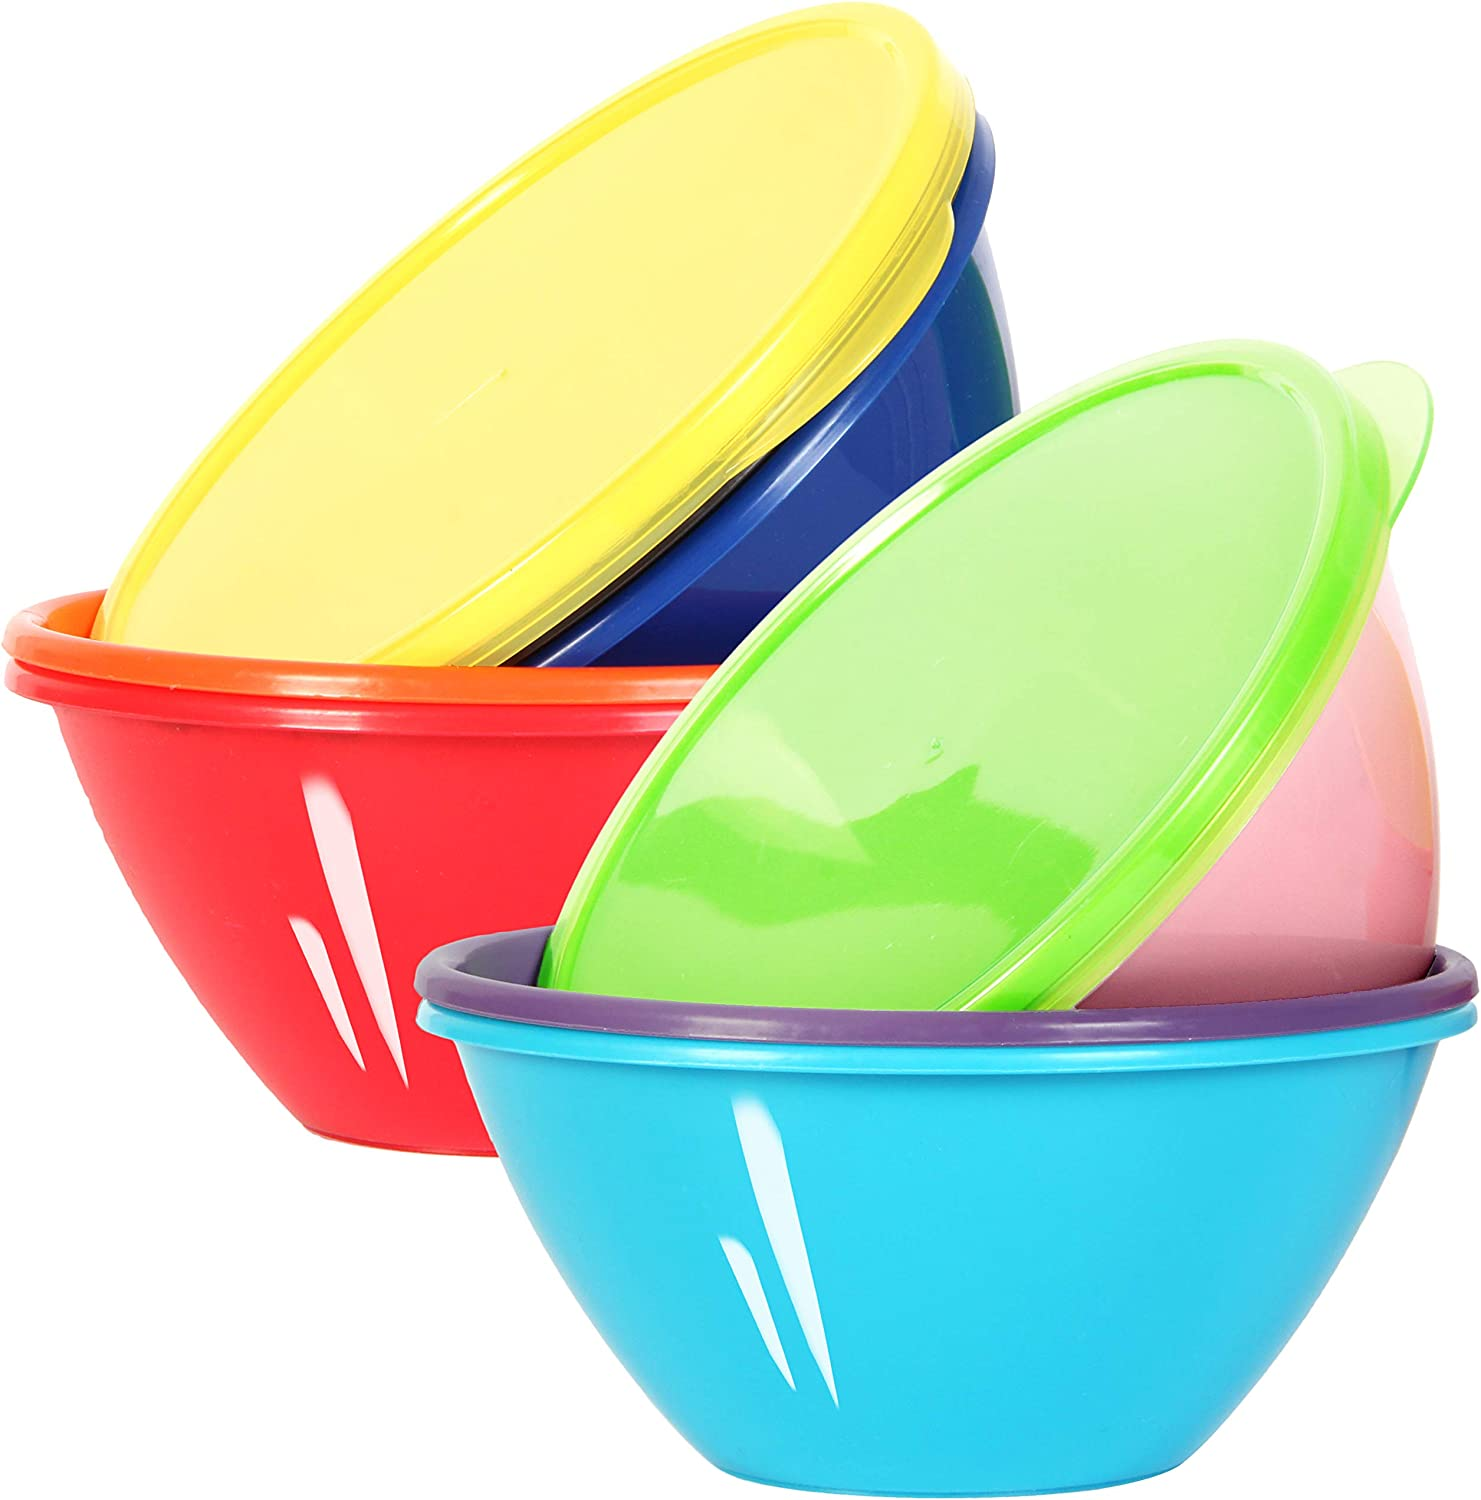 Youngever 32 Ounce Plastic Bowls with Lids, Large Cereal Bowls, Large Soup Bowls, Food Storage Containers, Microwave Safe, Dishwasher Safe, Set of 9 in 9 Assorted Colors